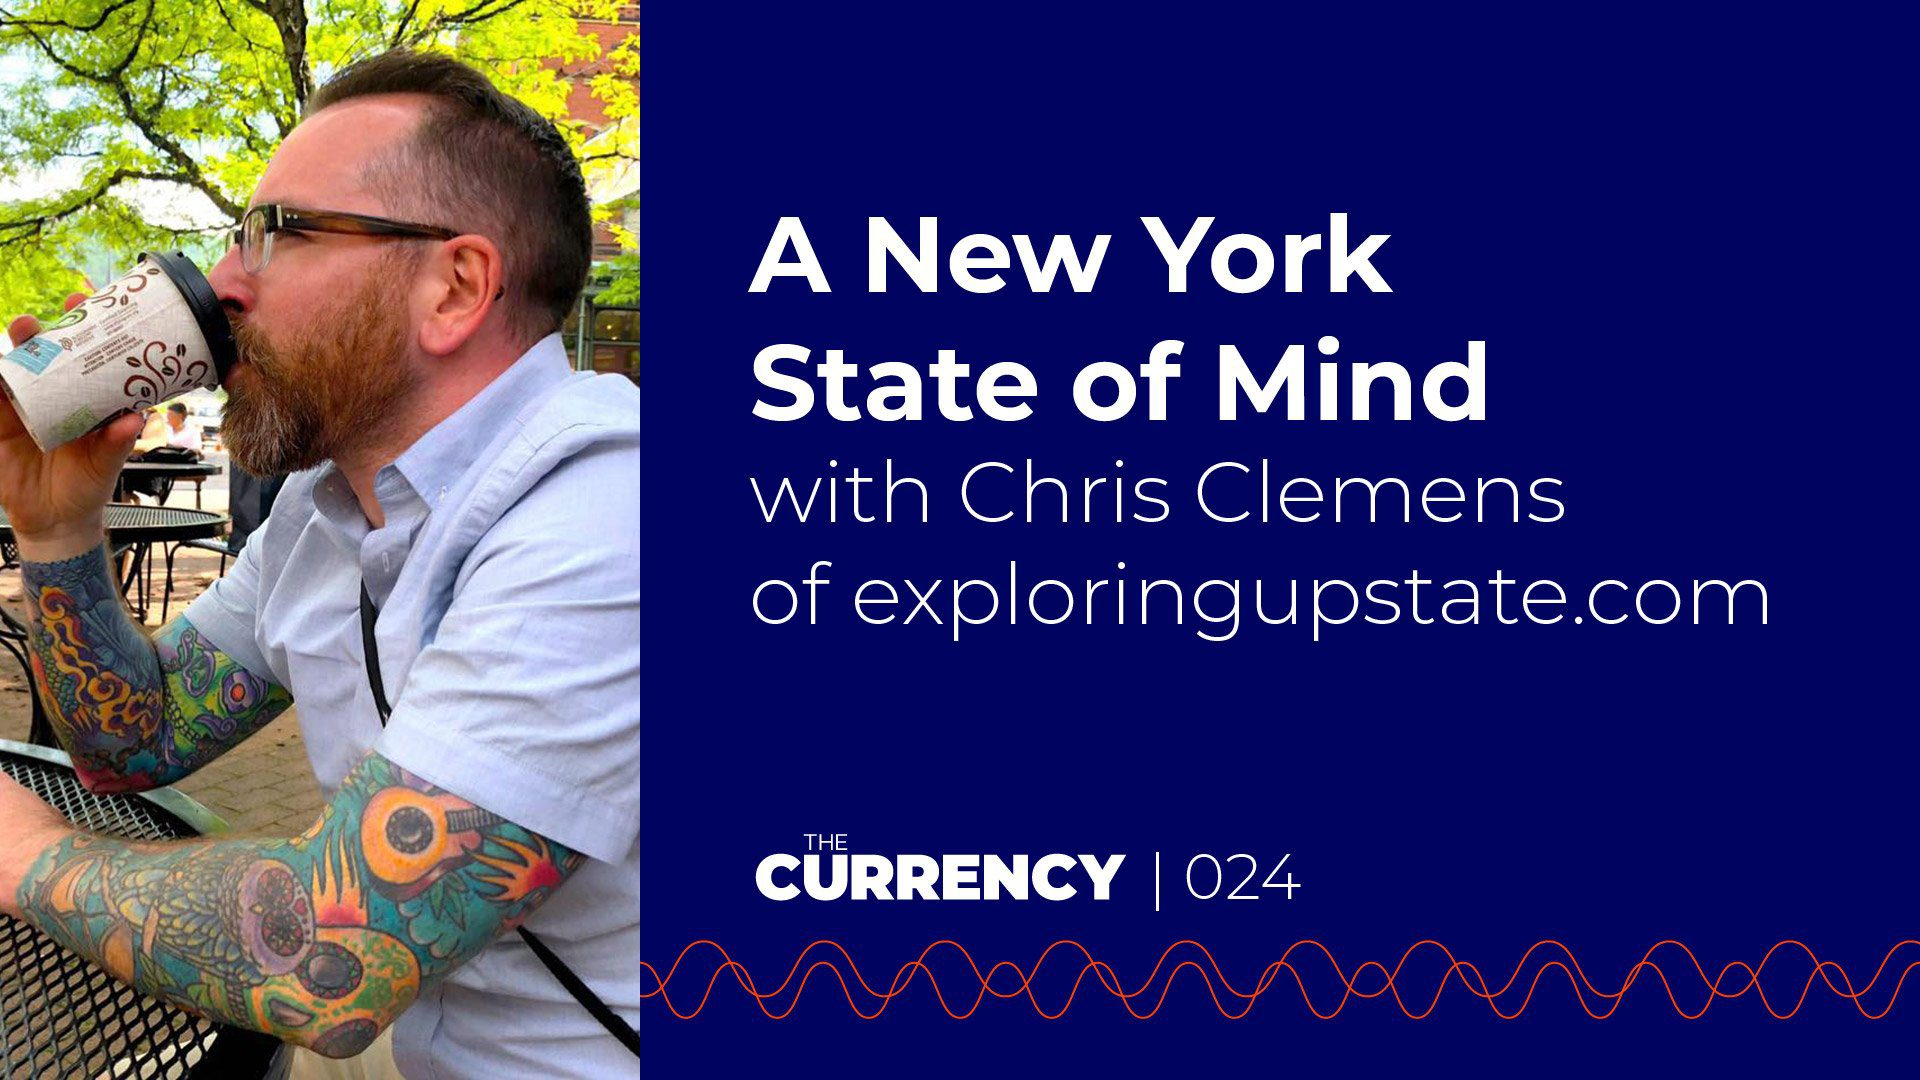 The Currency: [024] A New York State of Mind with Chris Clemens of exploringupstate.com